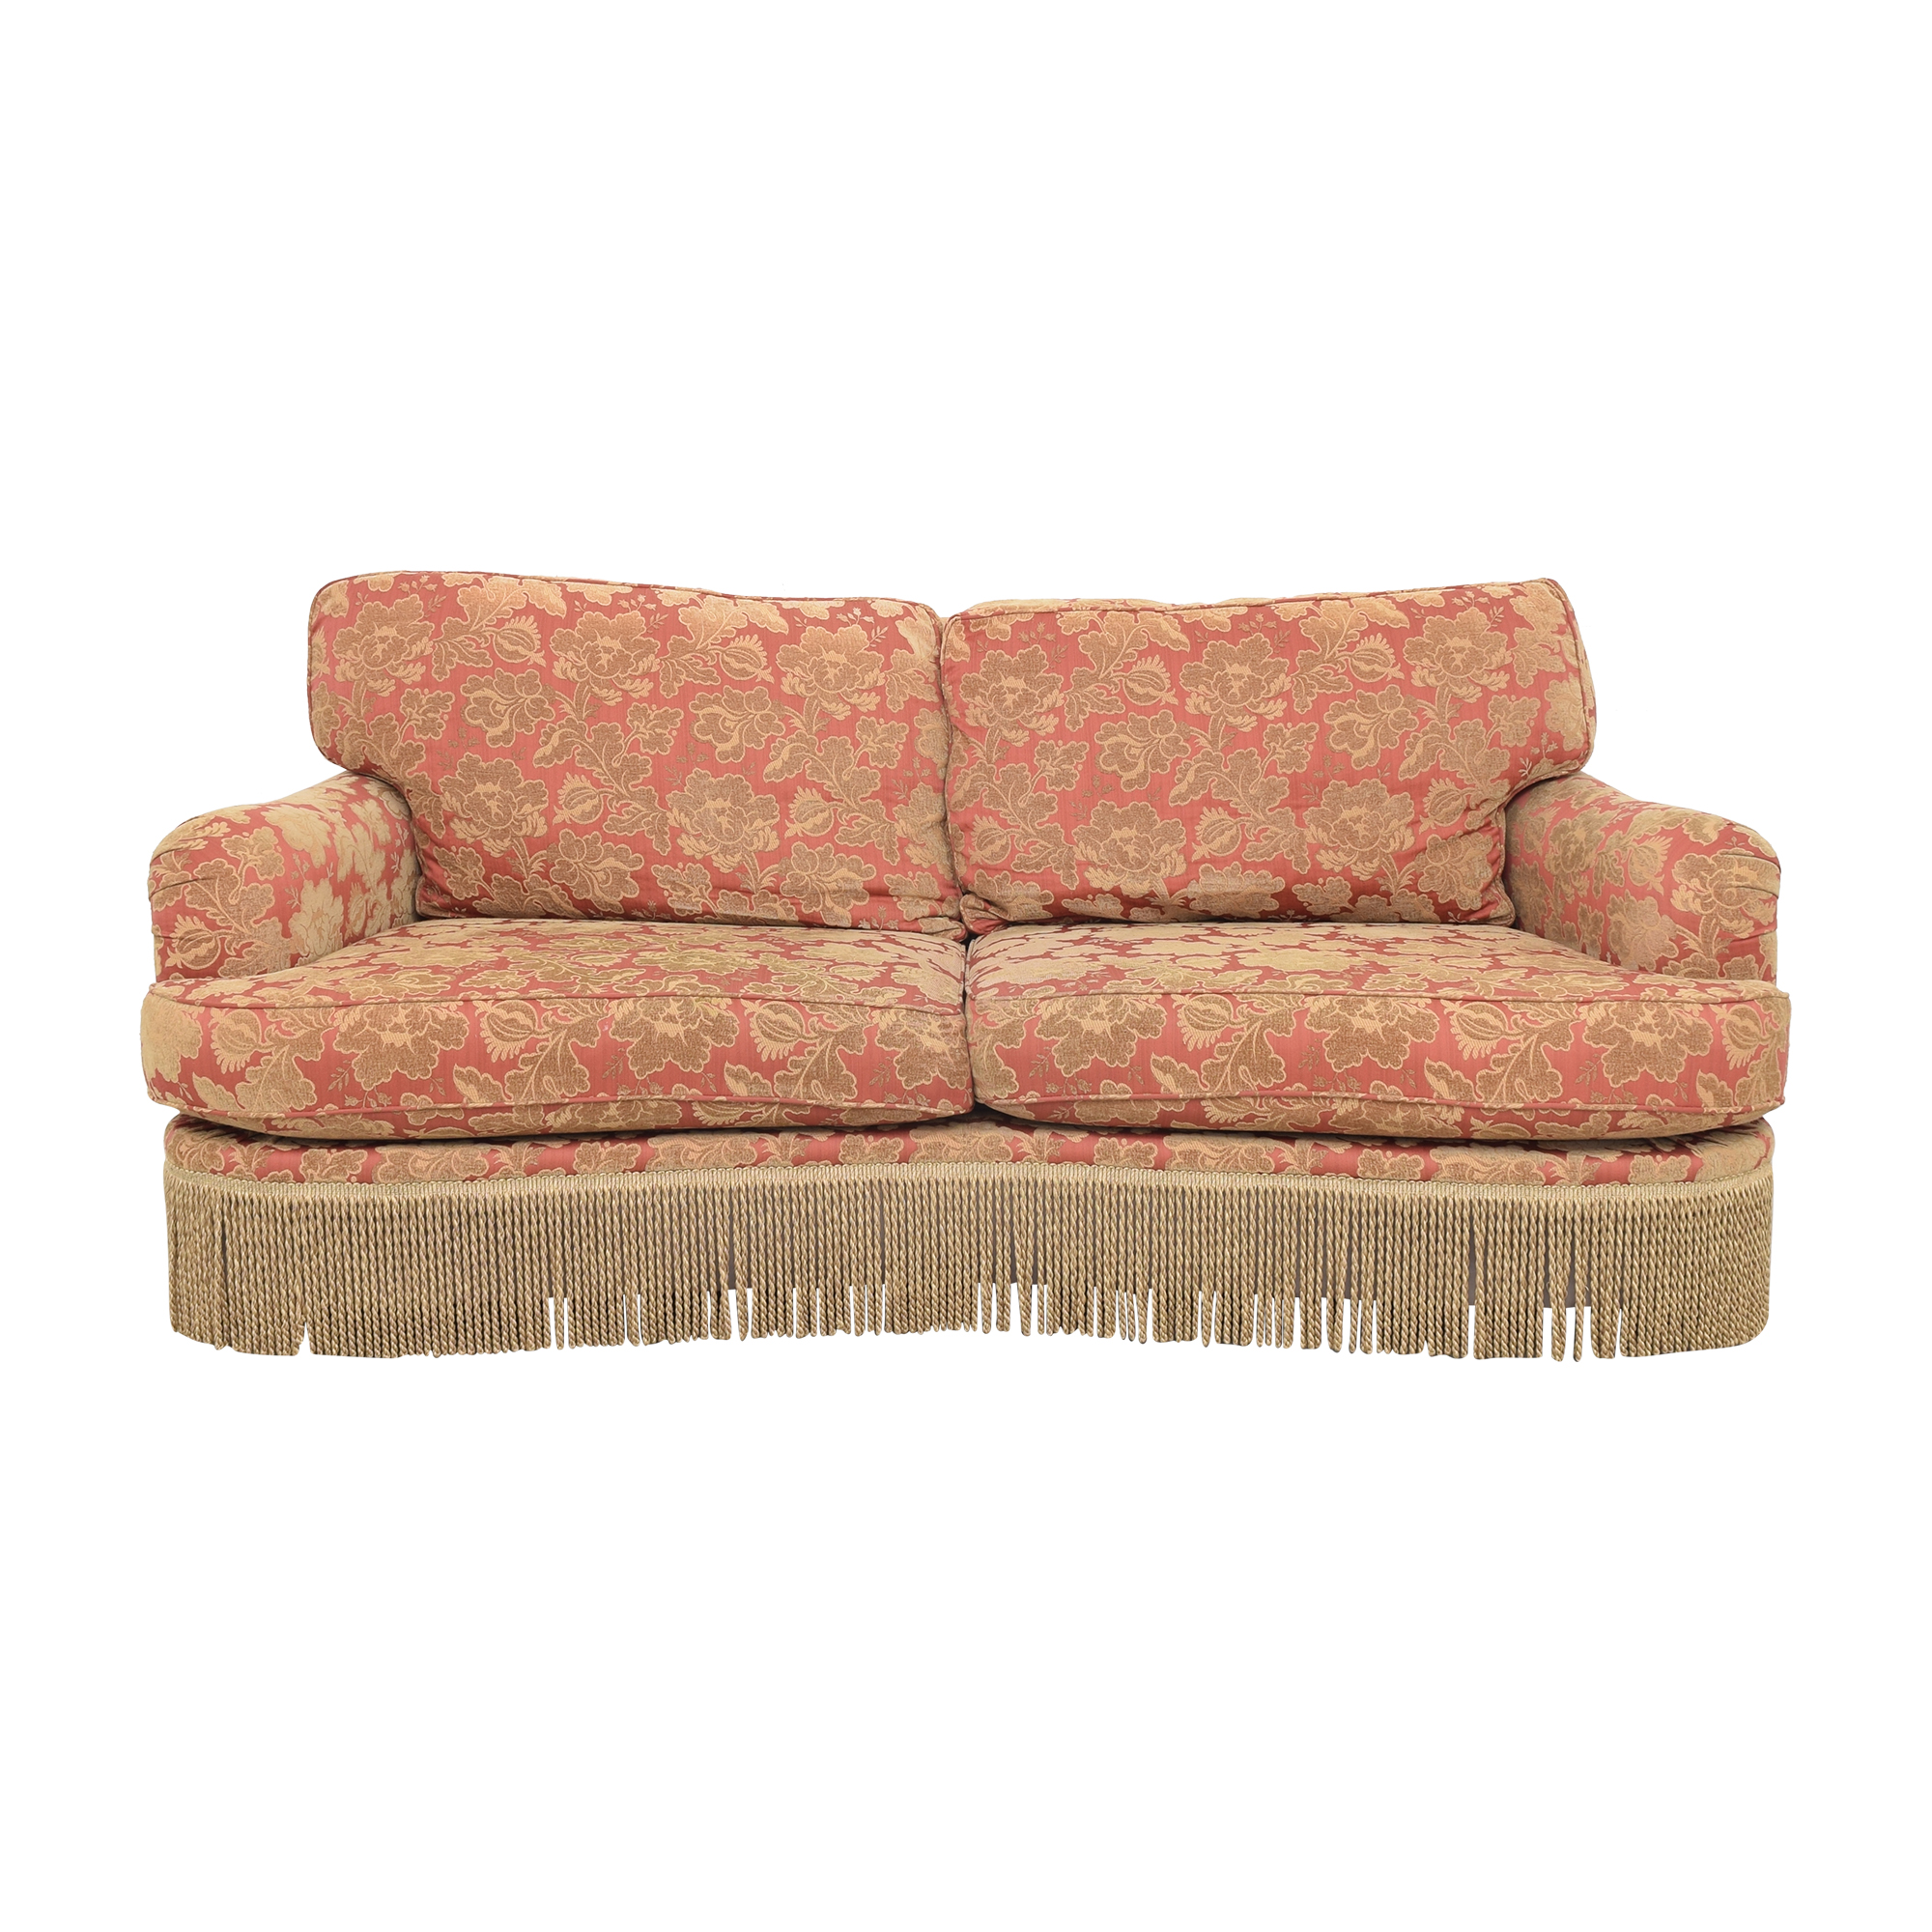 Vintage Style Fringe Skirted Sofa second hand